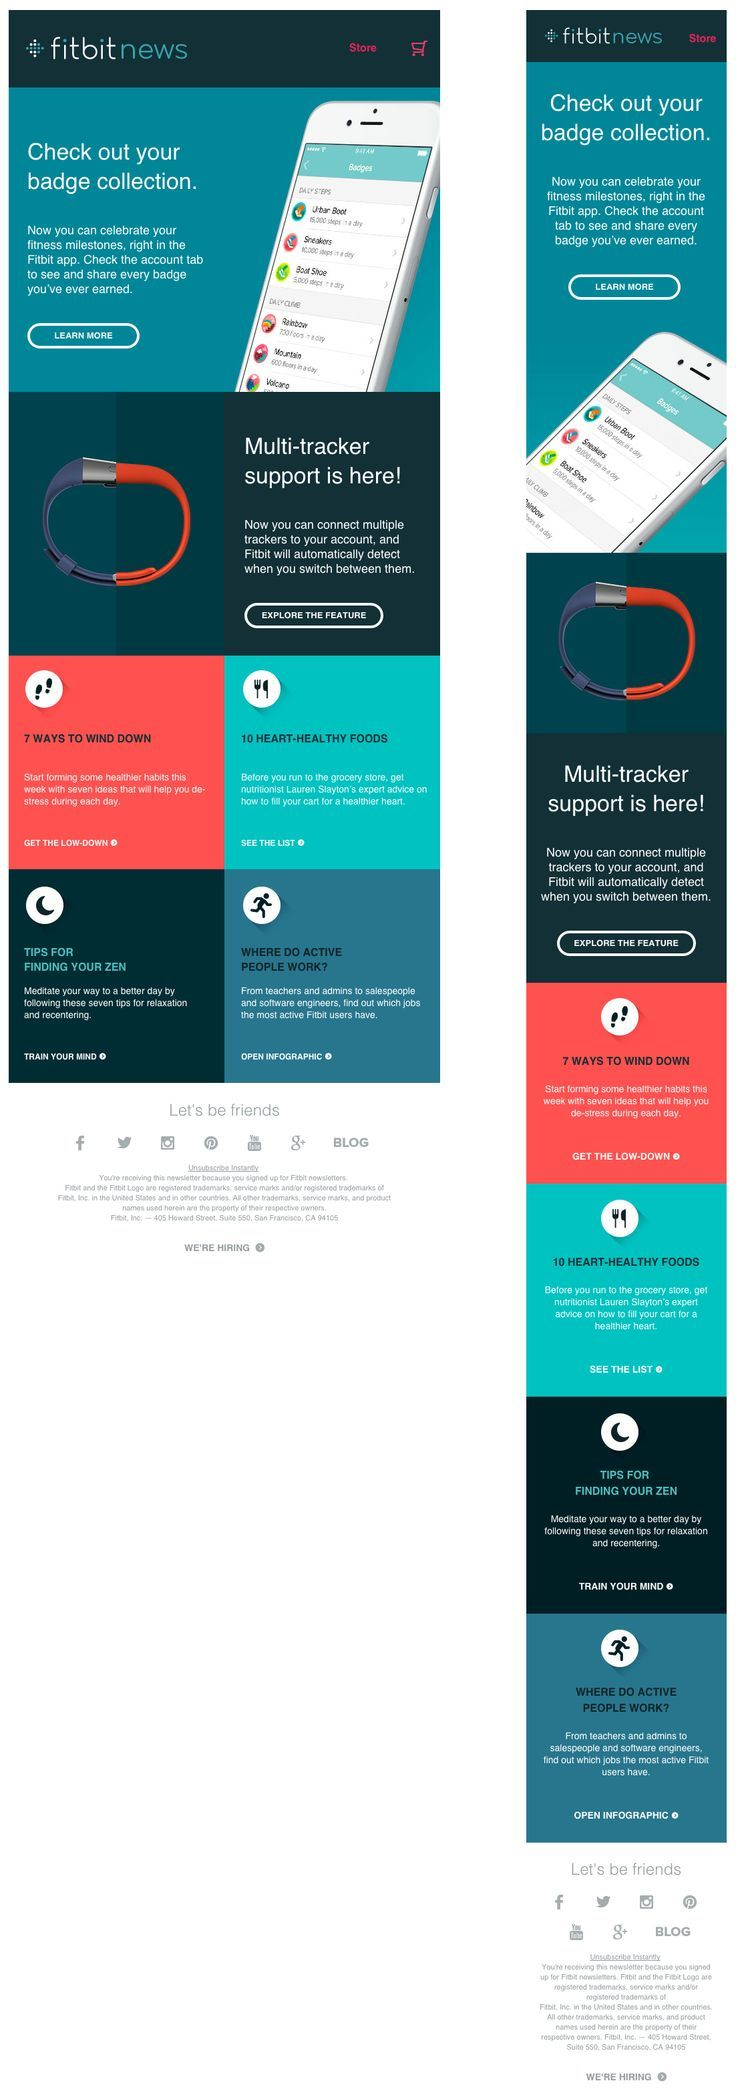 Pin By MailBakery On Inspirational Emails Pinterest Email Design - Web design newsletter template